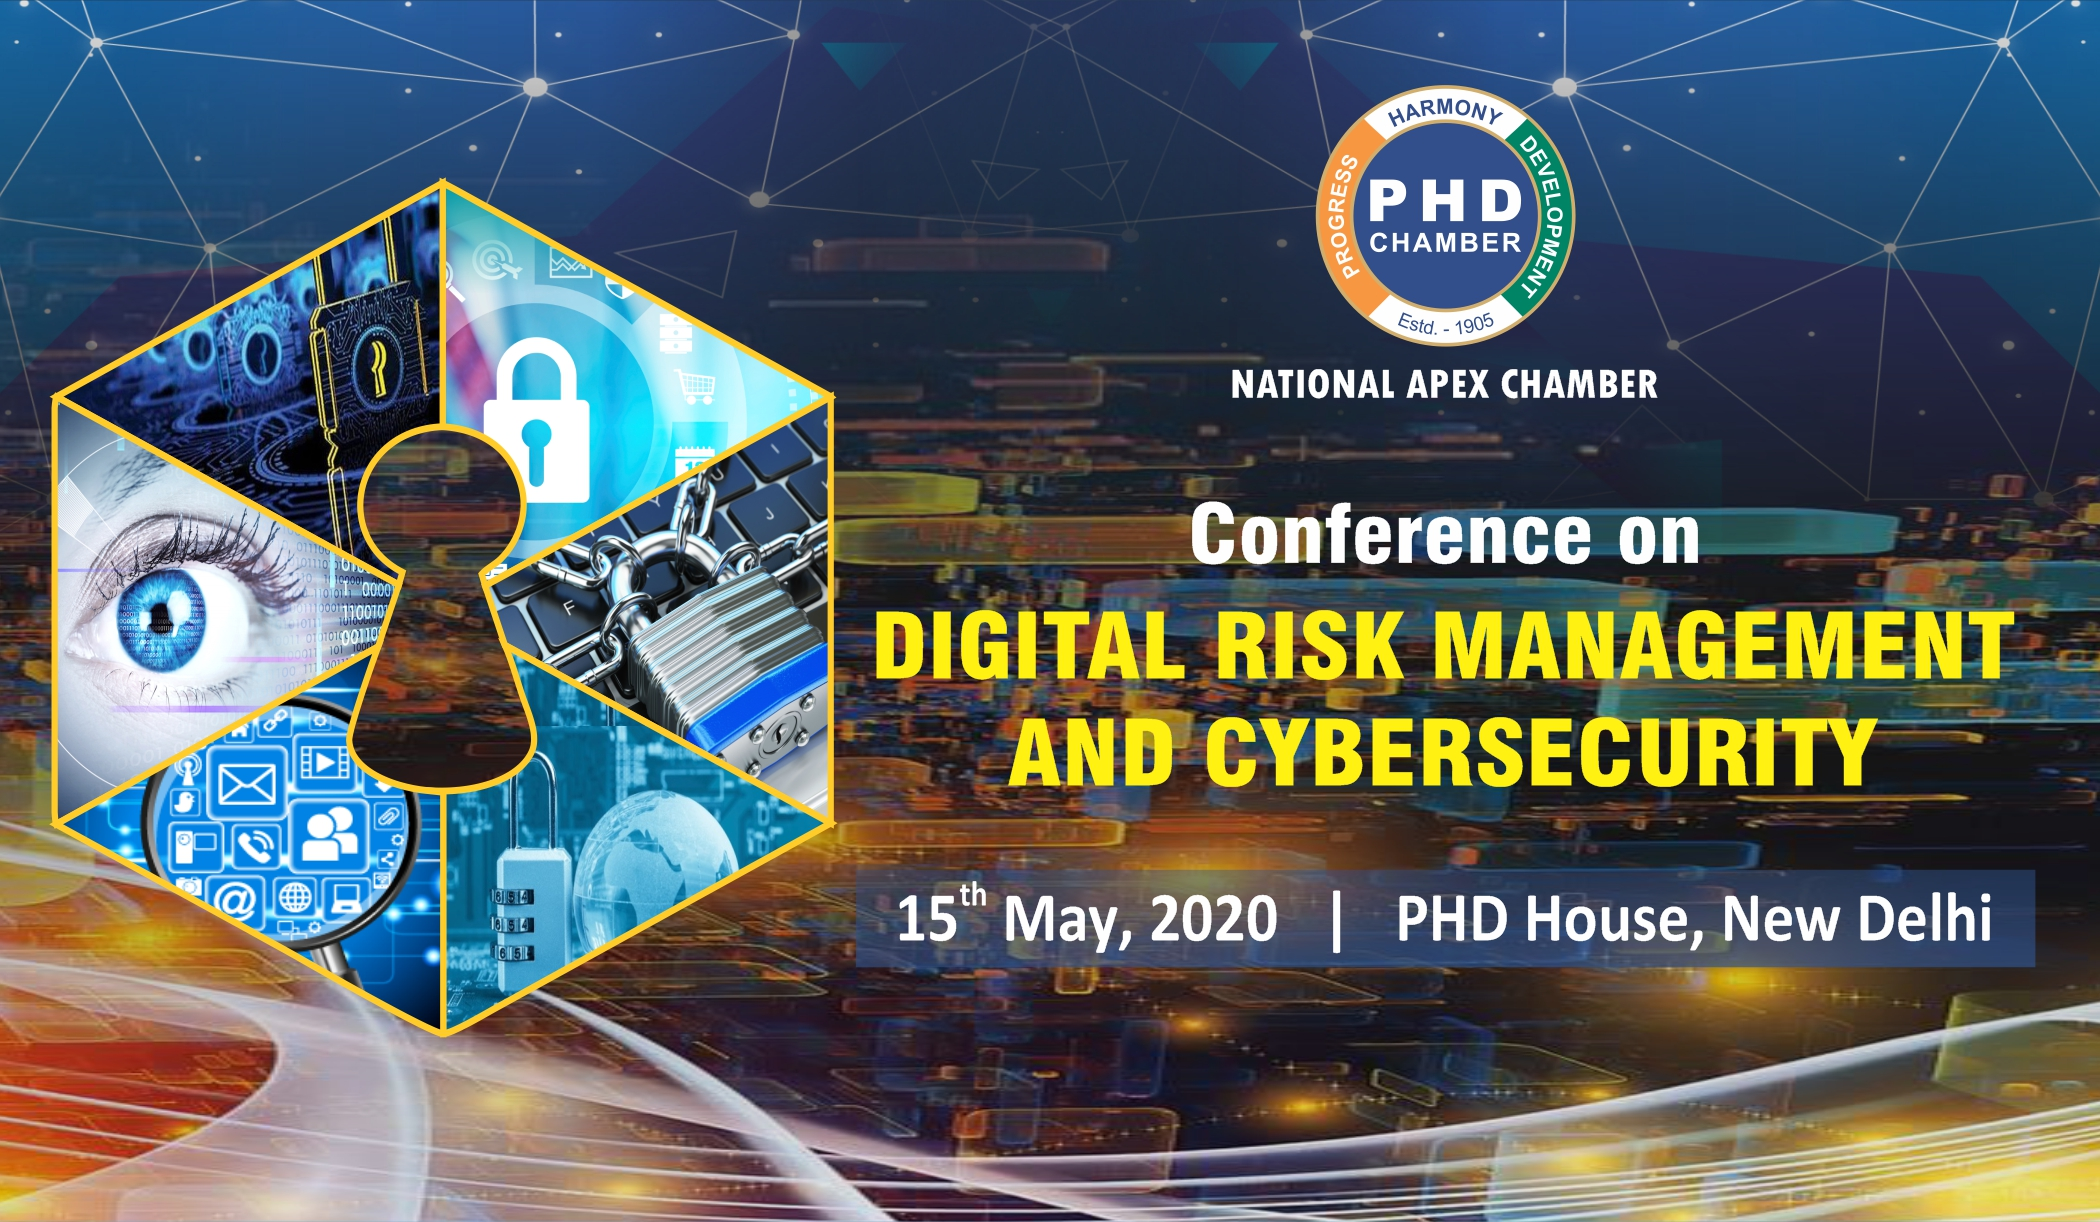 Conference on Digital Risk Management and Cybersecurity